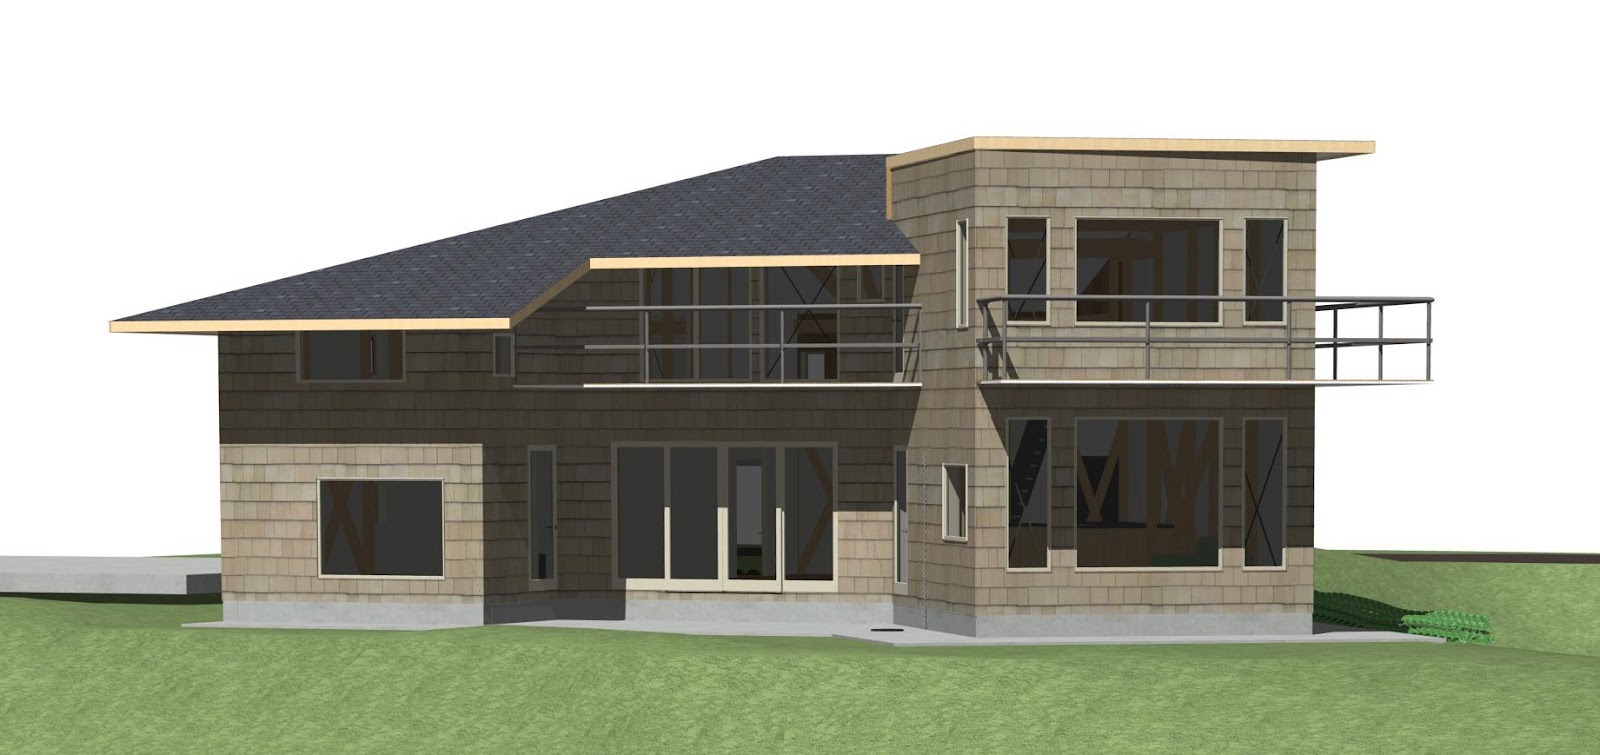 Designing and building a carbon neutral eco house in japan for Carbon neutral home designs